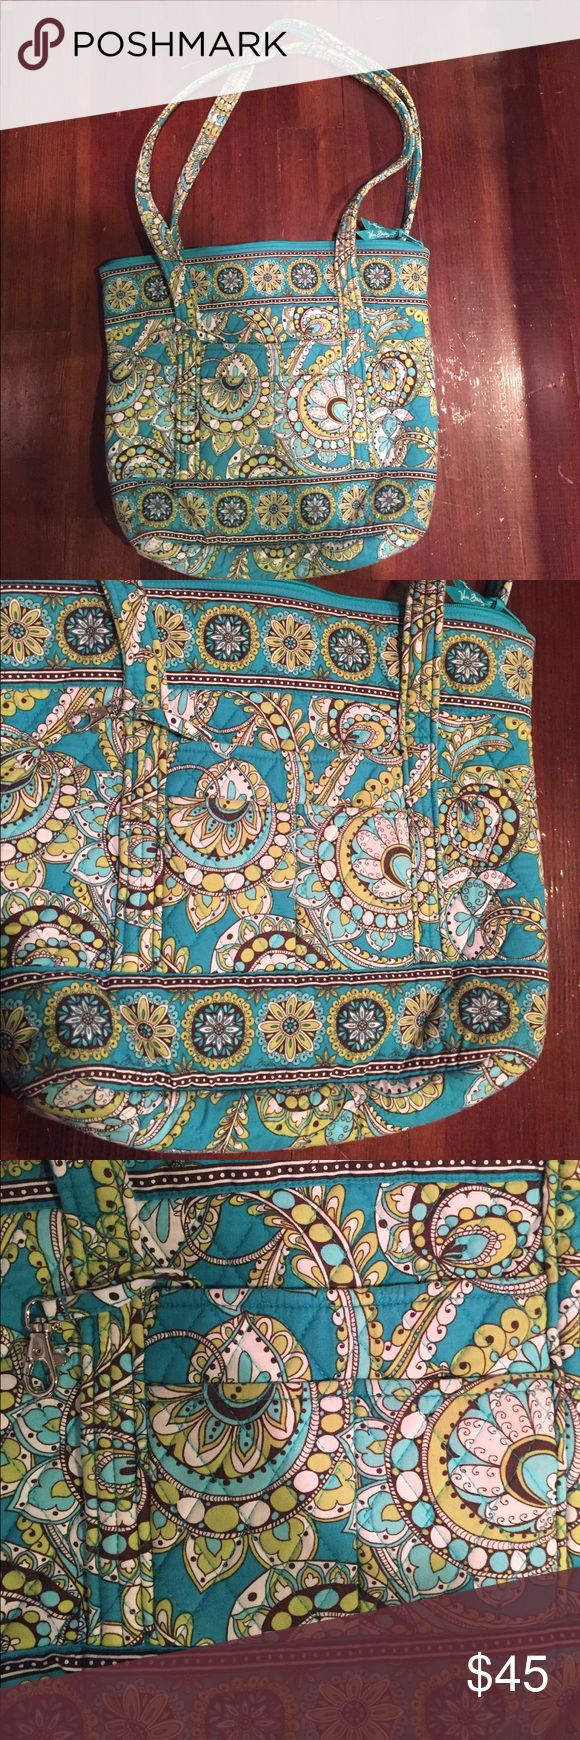 Vera Bradley tote bag Brand-new, never worn! Beautiful tote bag by vera Bradley and fun, limited edition print that is no longer available! Perfect for travel, for school, or an every day bag! Vera Bradley Bags Totes